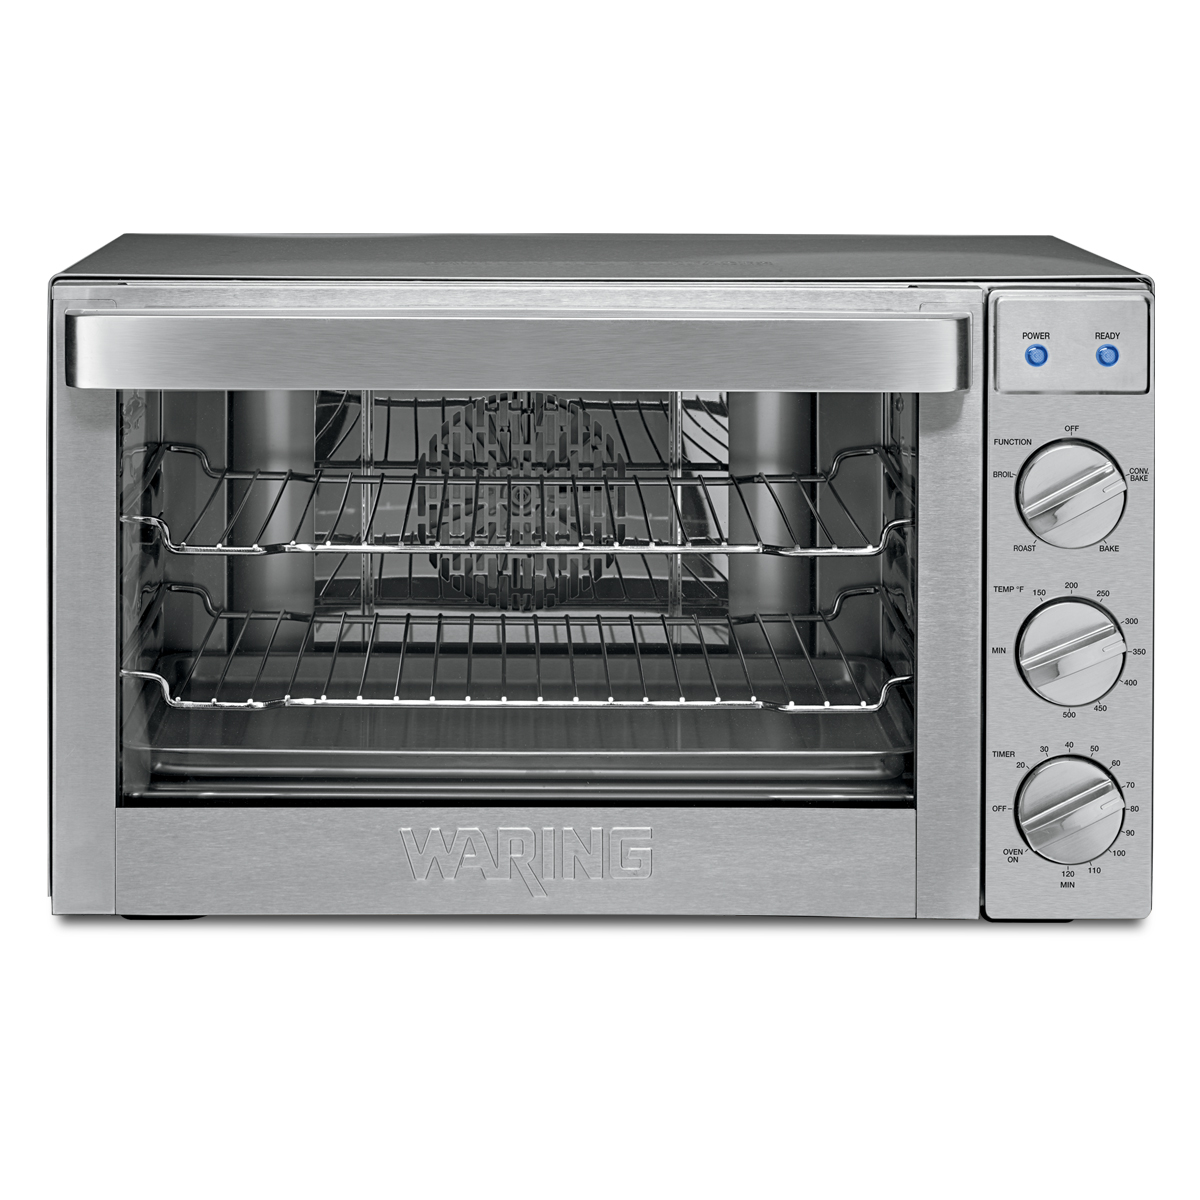 Countertop Cooking Appliances ~ Countertop cooking appliances kitchenware news